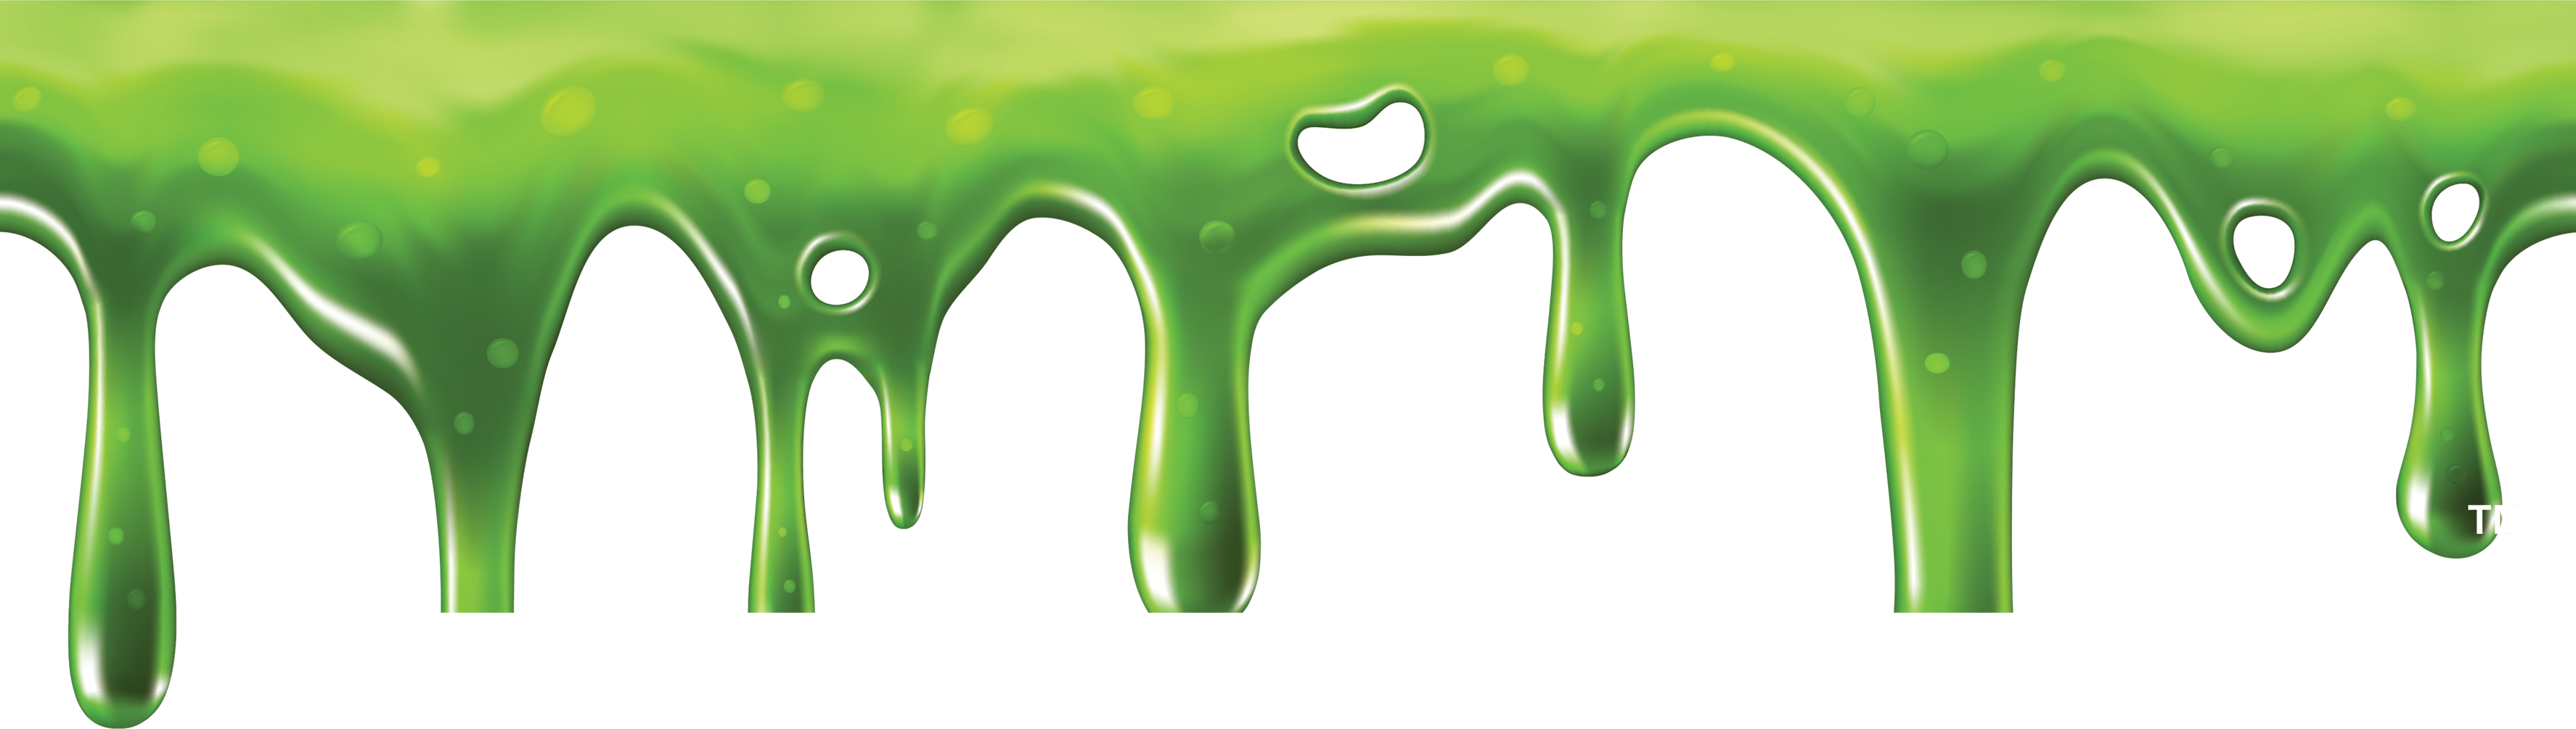 Slime background png. Slimygloop horizon group usa